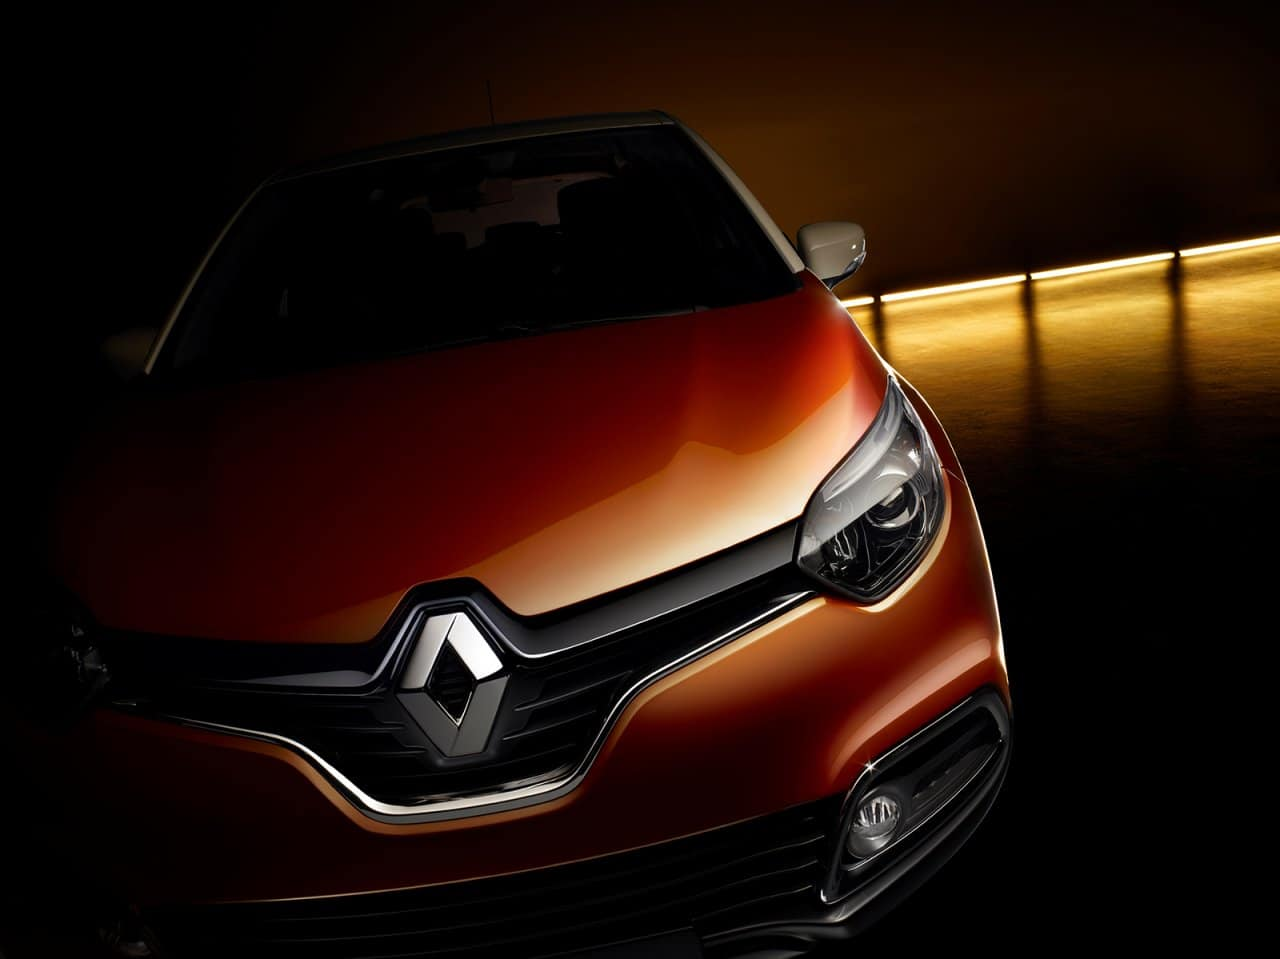 premier visuel officiel du renault captur crossover